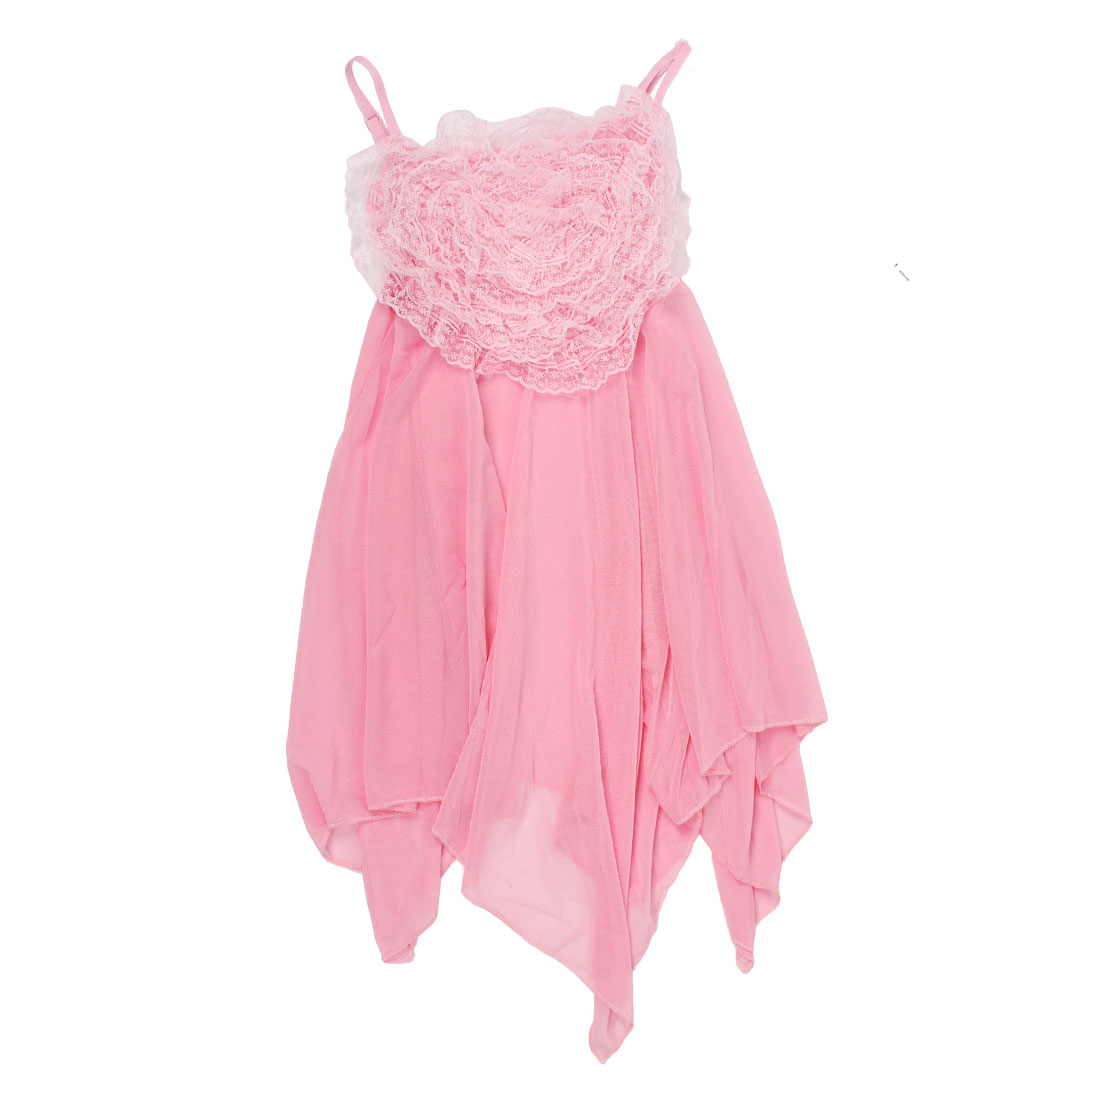 Ladies Pink Sleeveless Lace Flower Decor Sexy Lingerie Dress w G-String XS